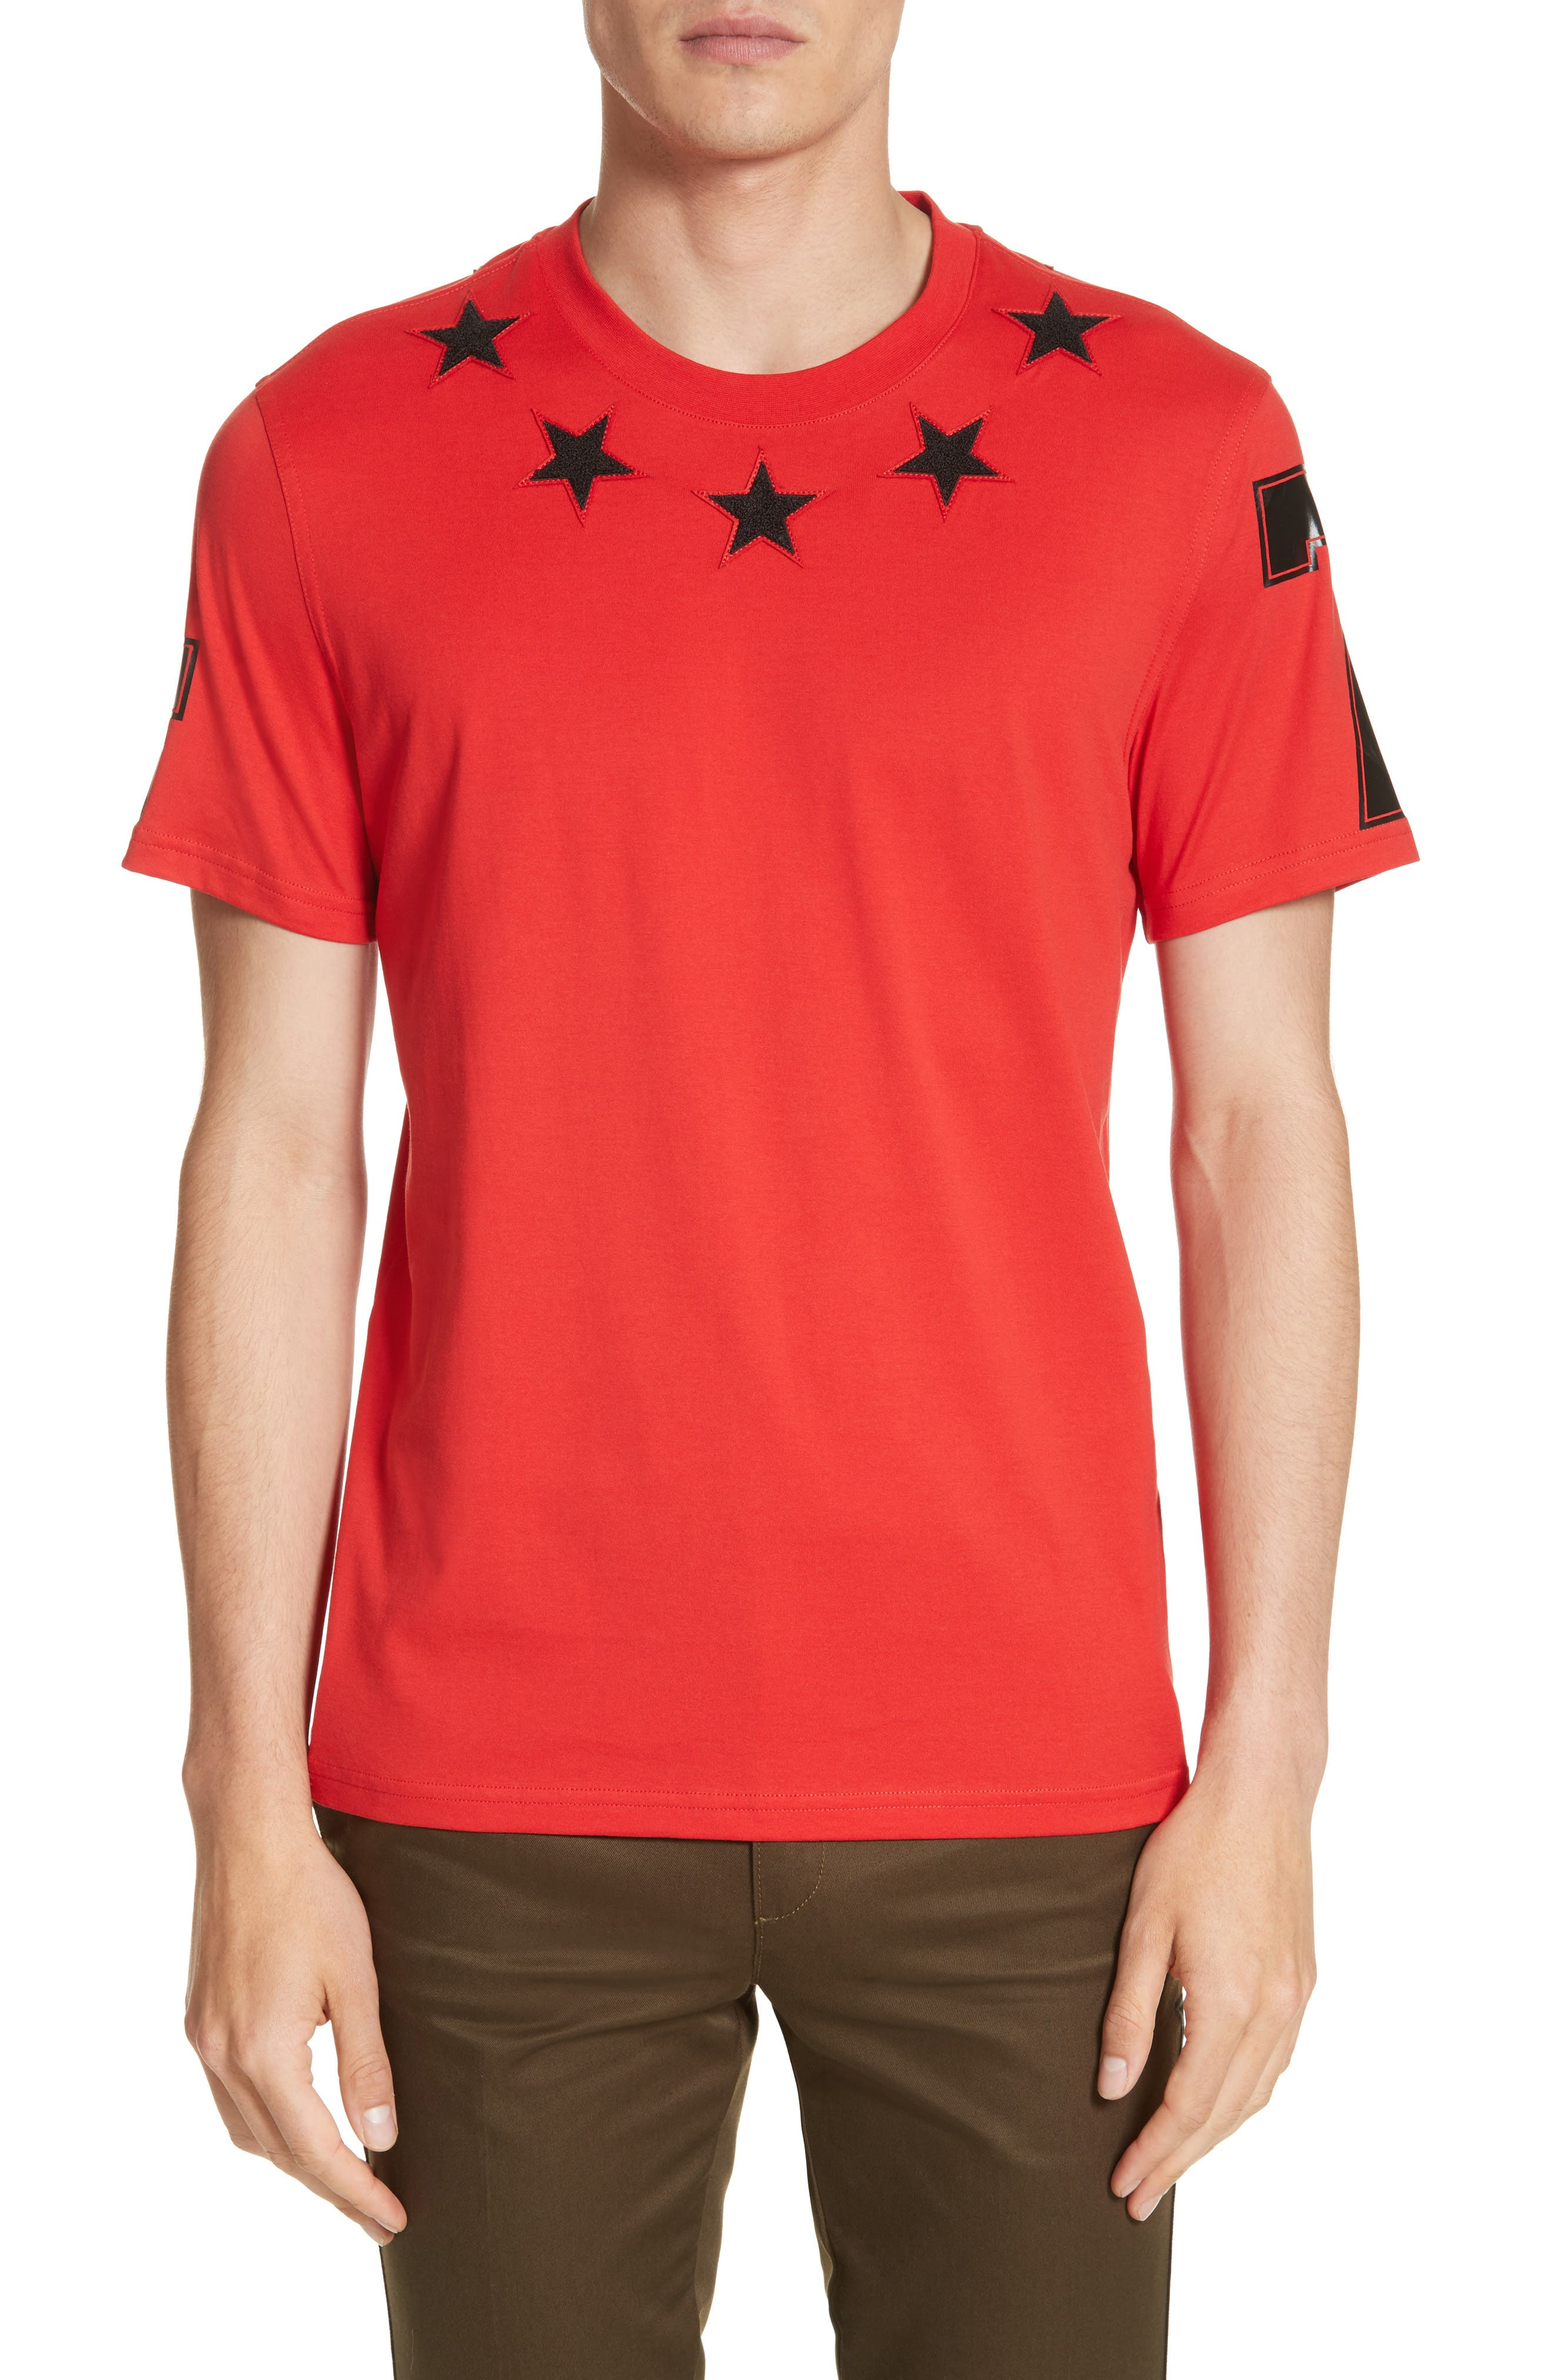 Givenchy Cuban Fit Star 74 T-Shirt